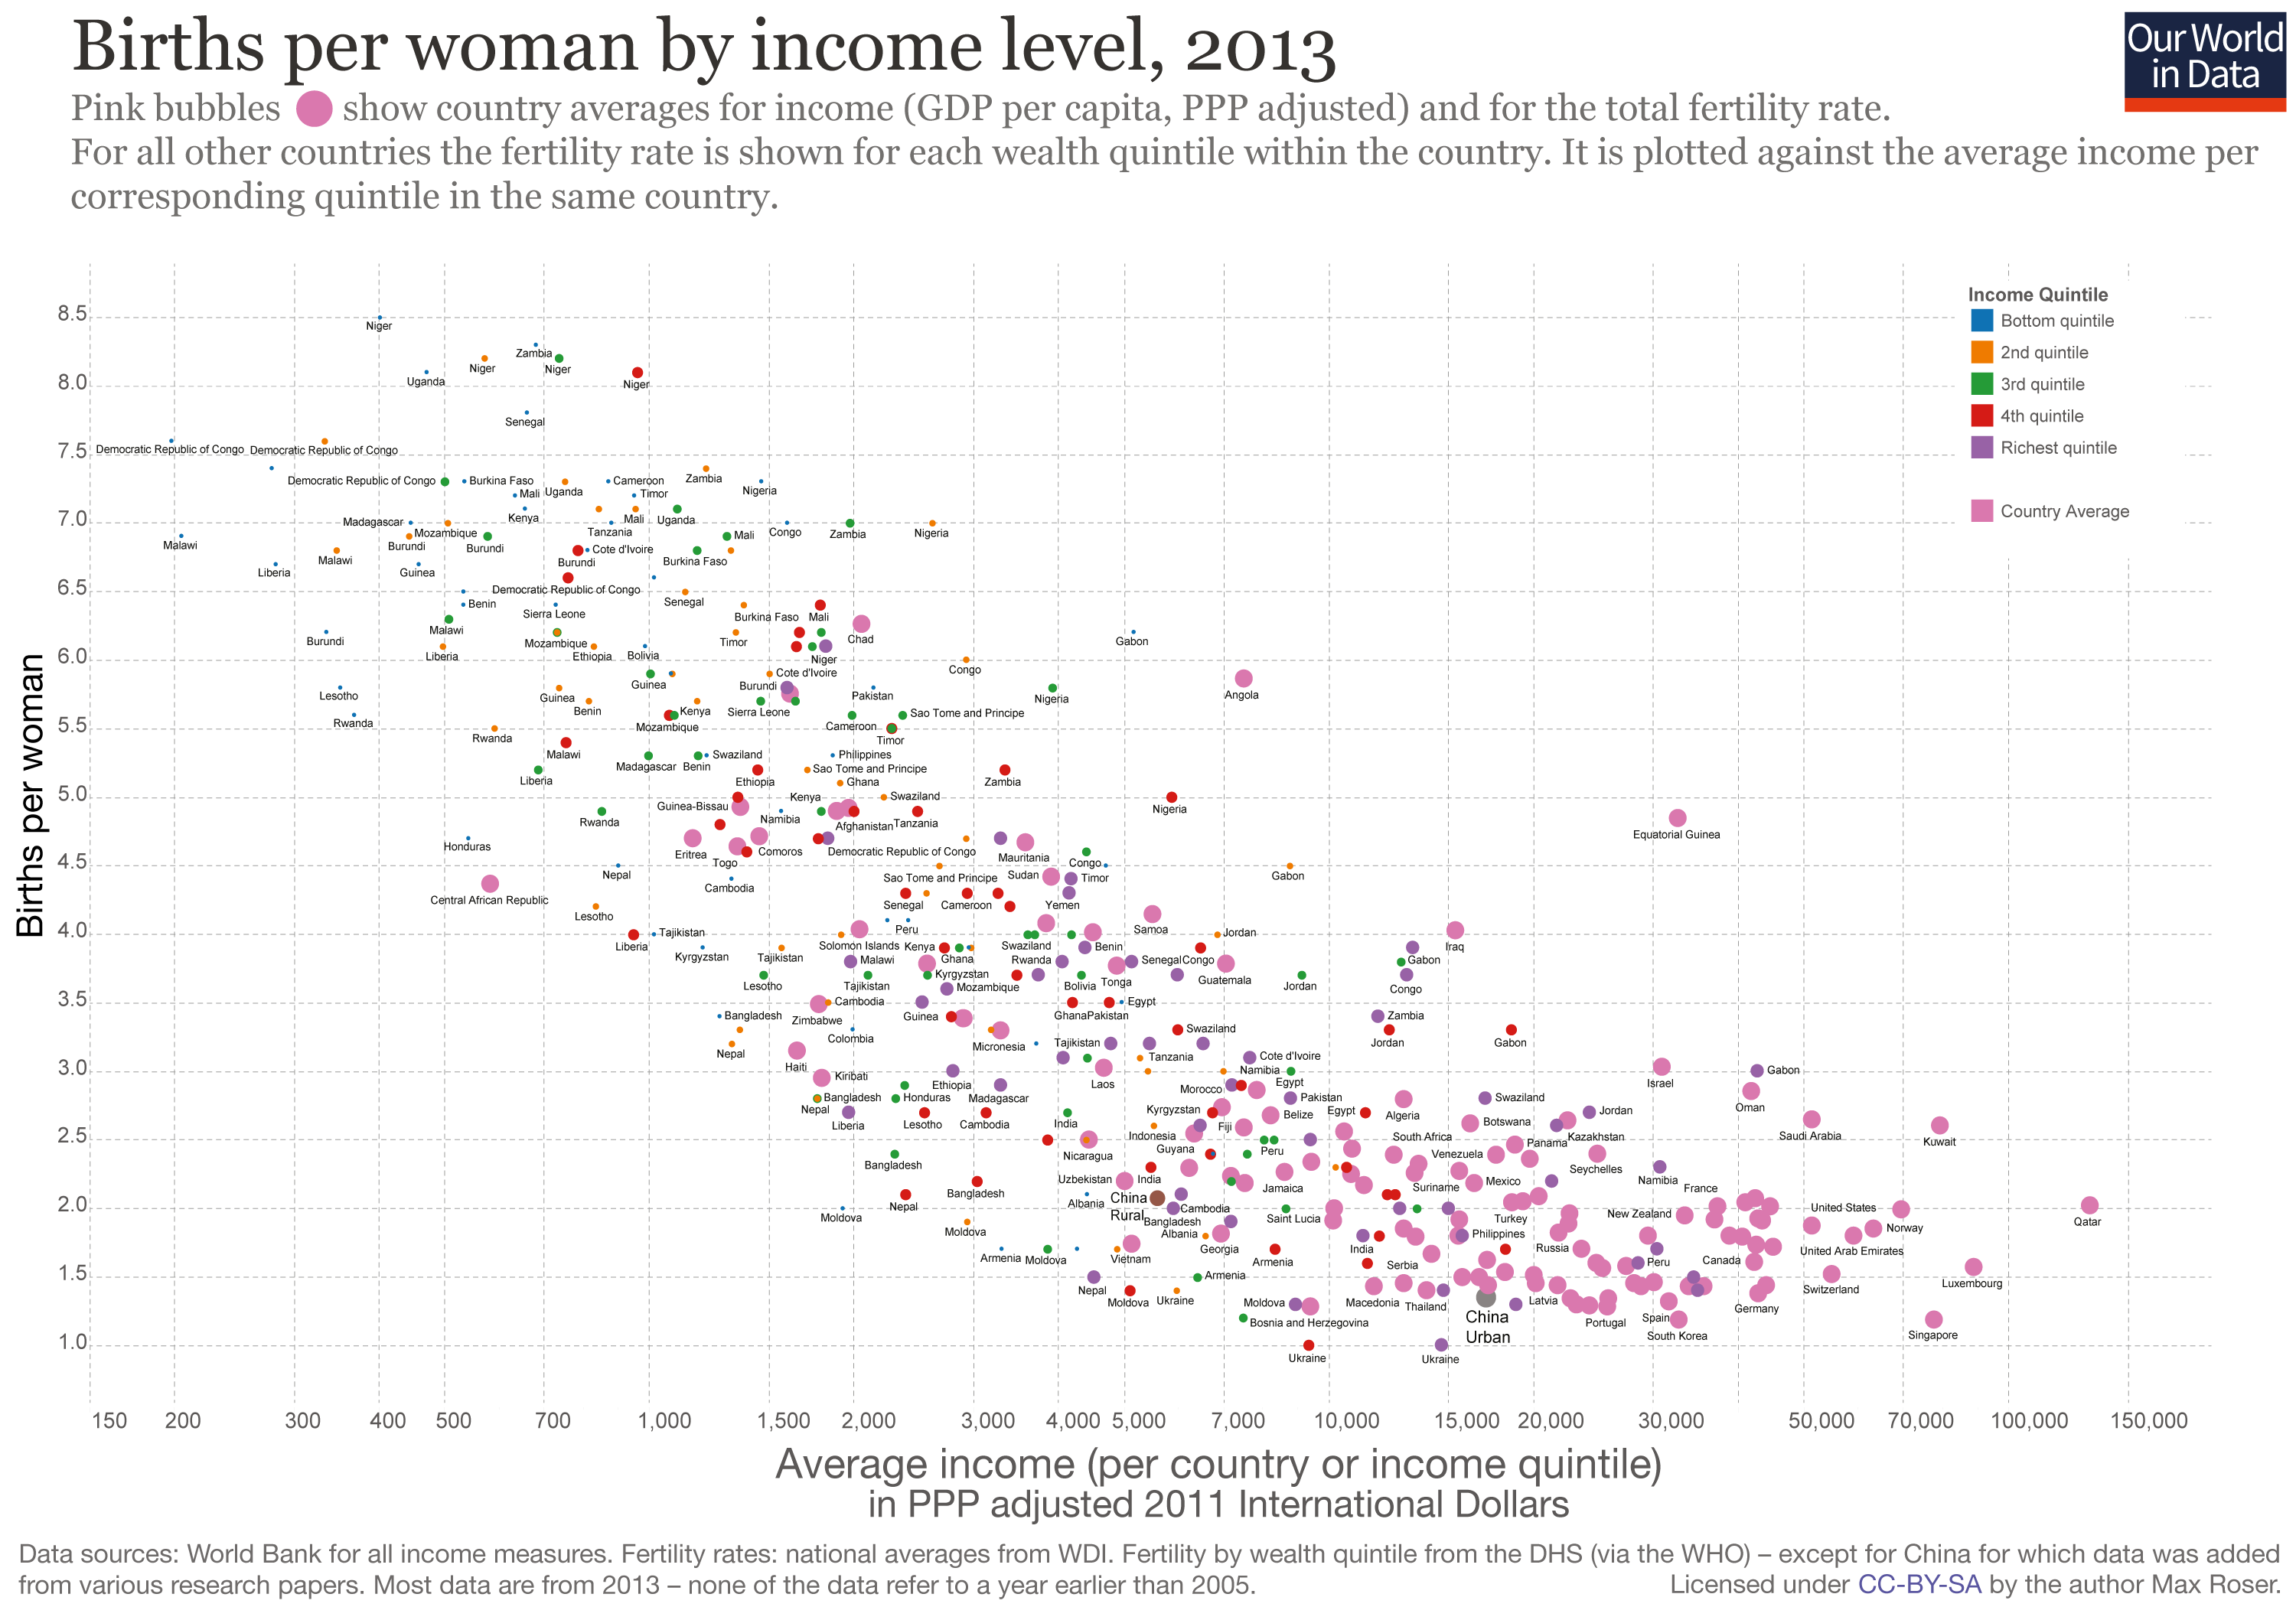 Fertility Rate - Our World in Data